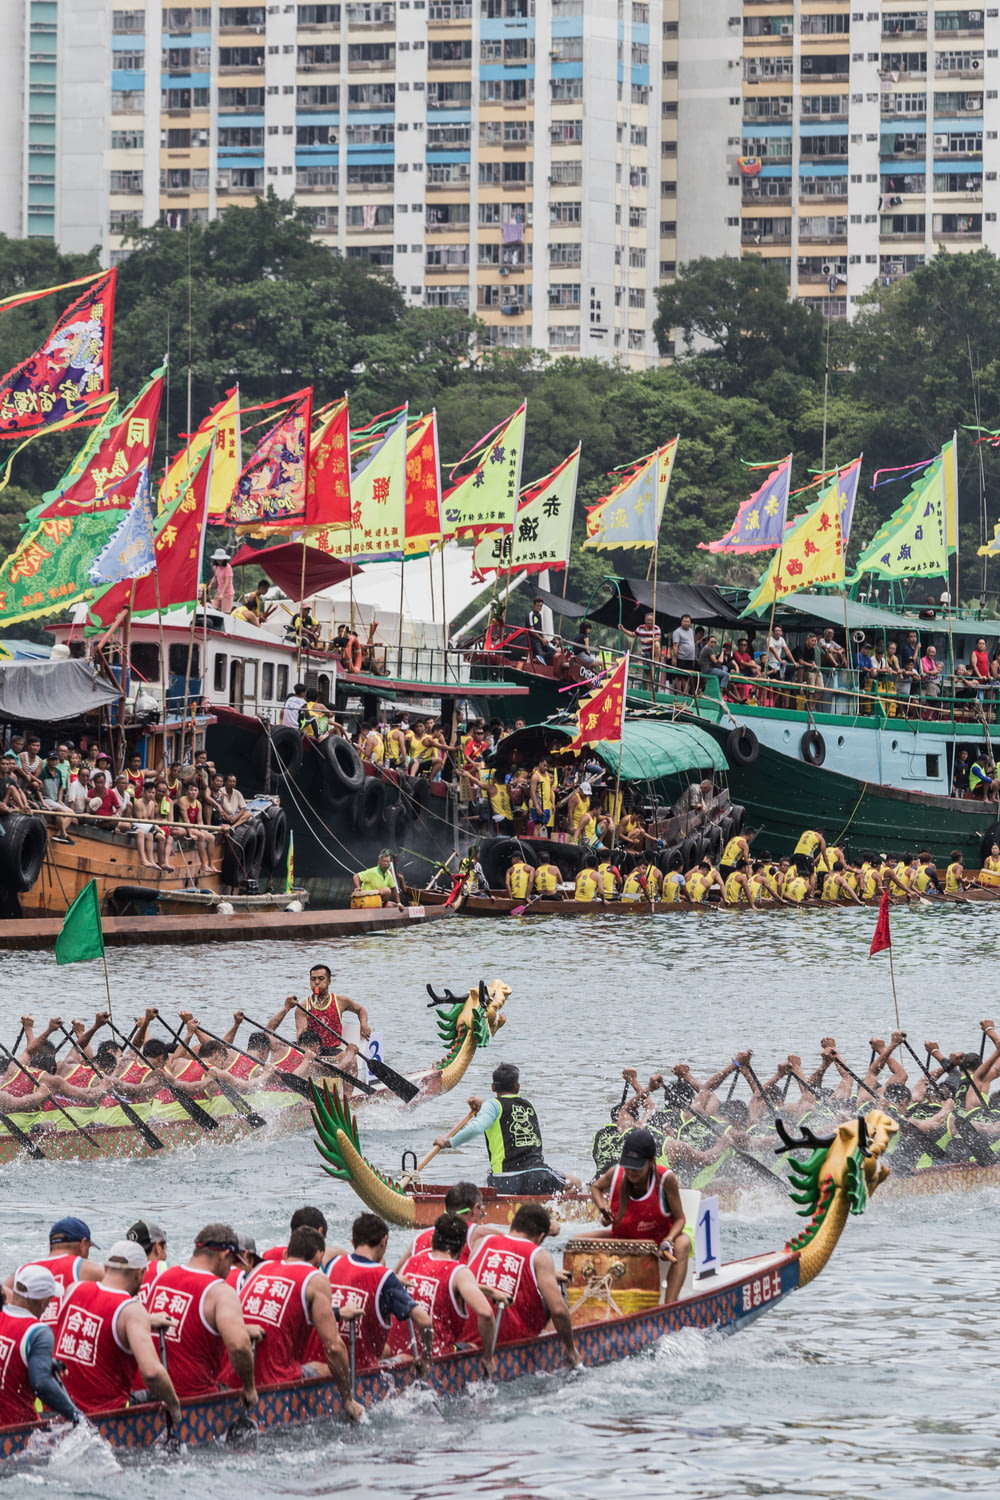 group of people riding dragon boat on water